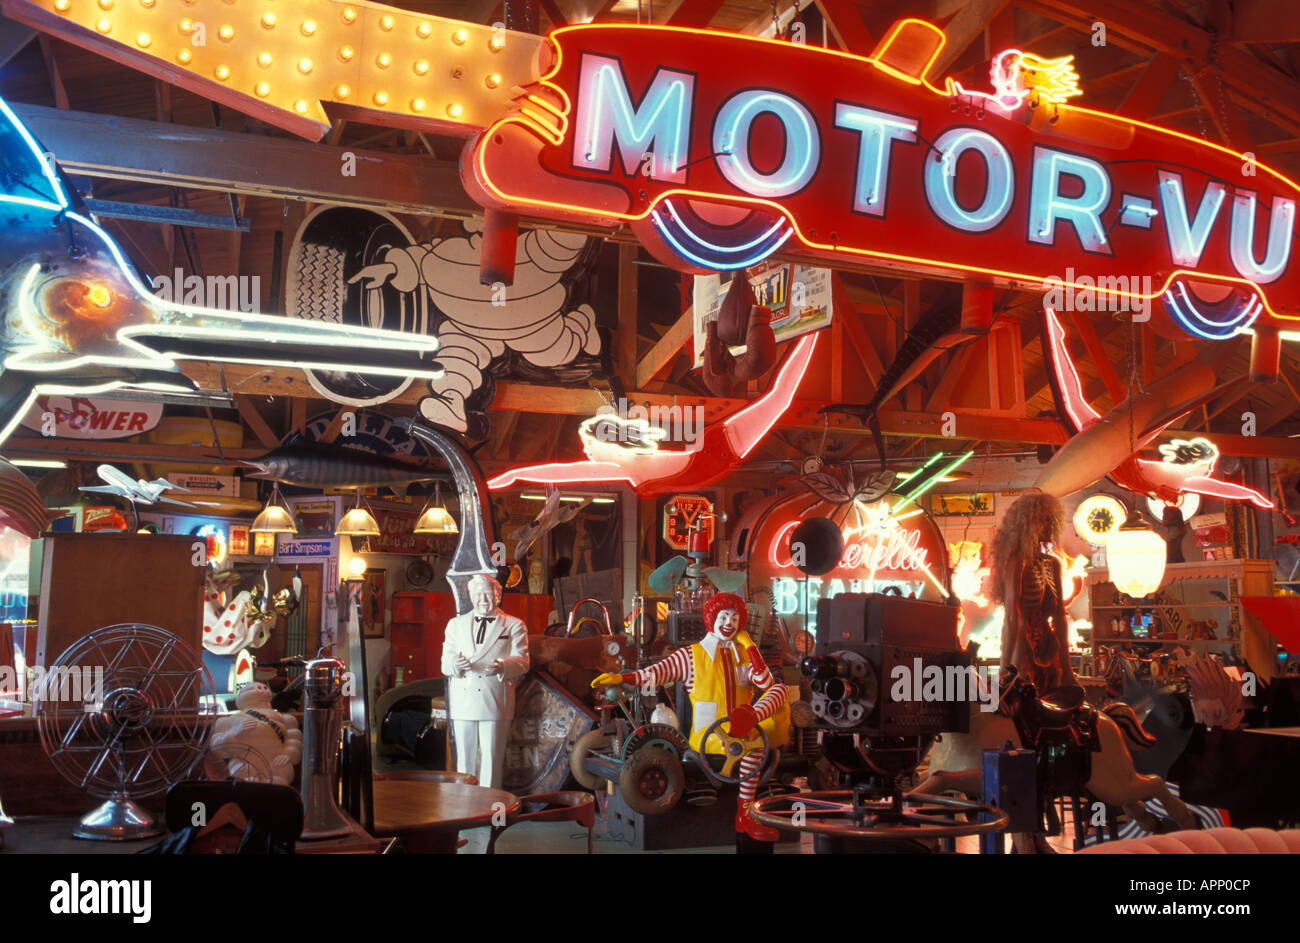 antique shops los angeles Antiques shop OFF THE WALL at Melrose Avenue in Hollywood Los  antique shops los angeles